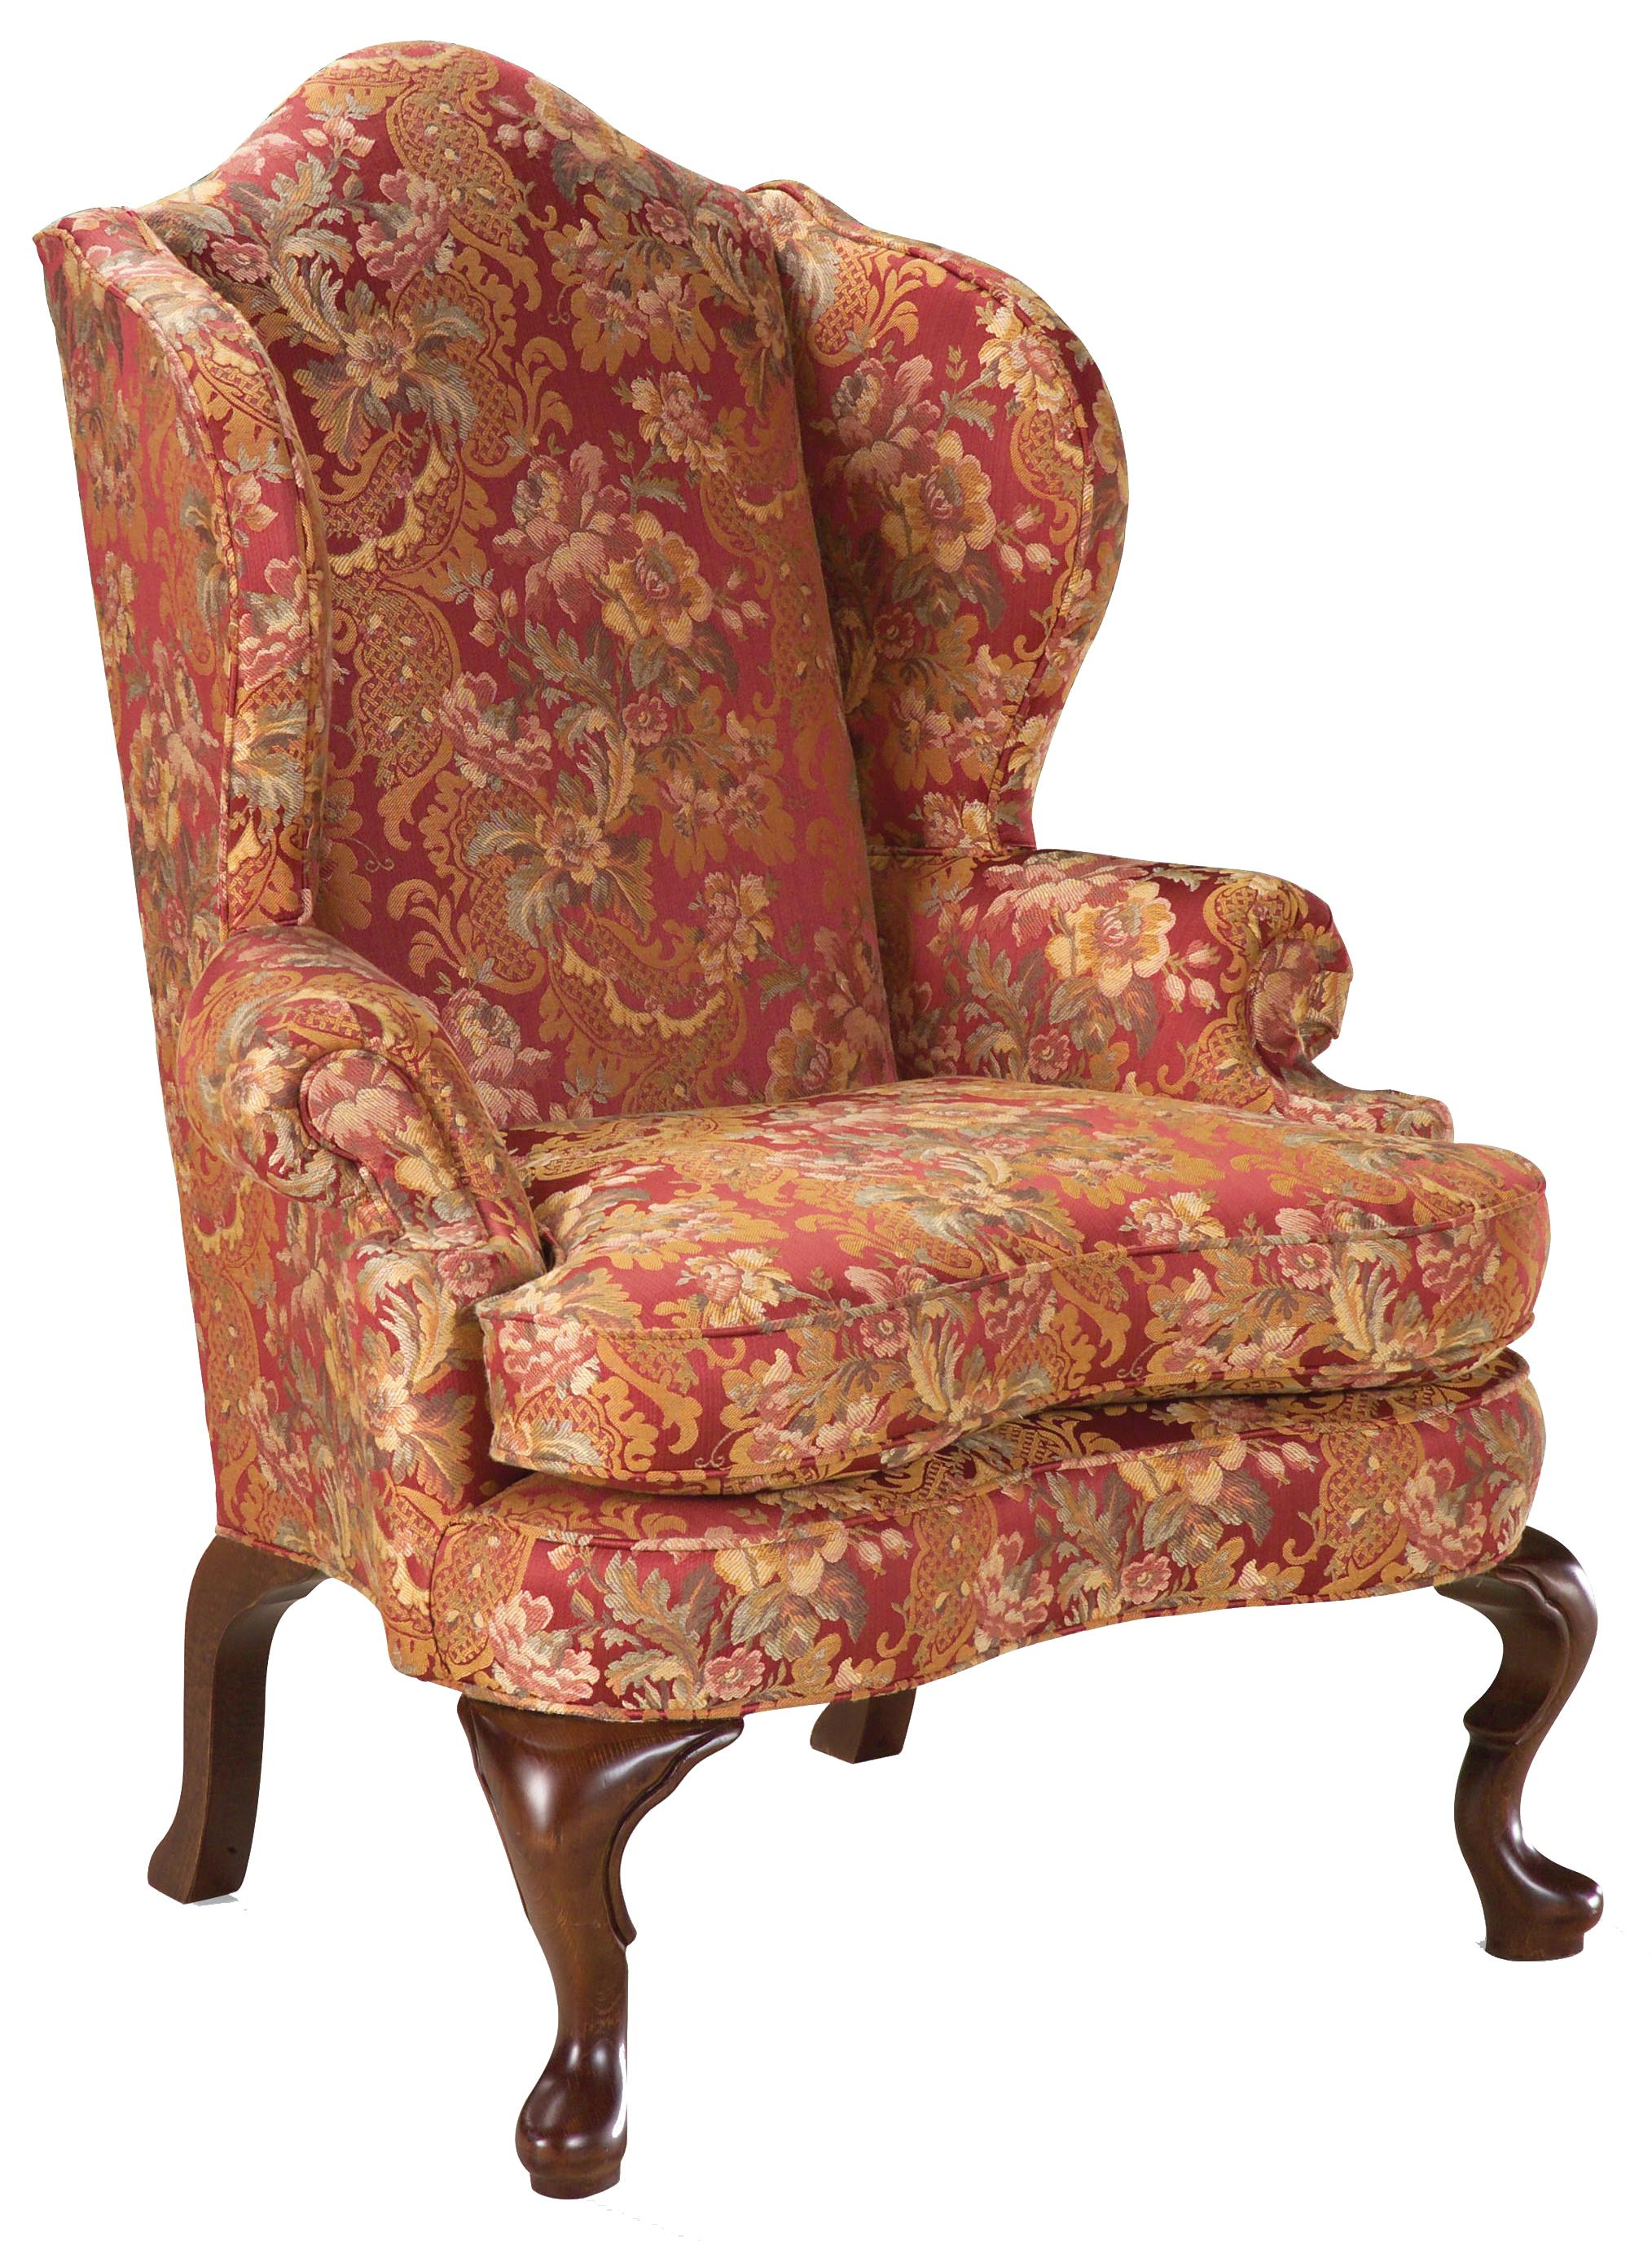 Fairfield Chairs Chairs High Back Wing Chair In The Traditional Style By Fairfield At Howell Furniture